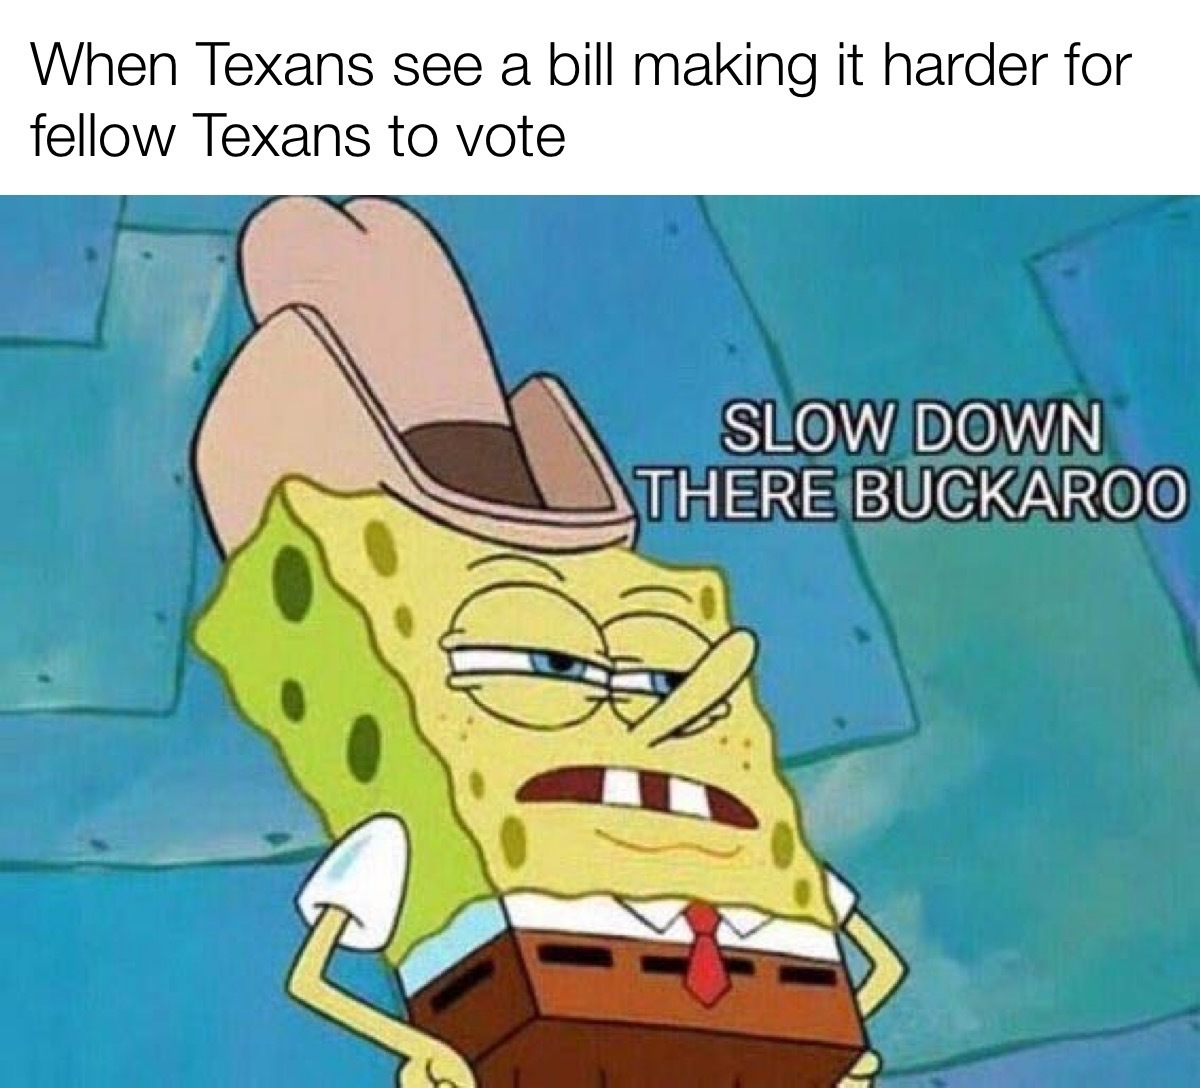 this town aint big enough for more voter suppression bills